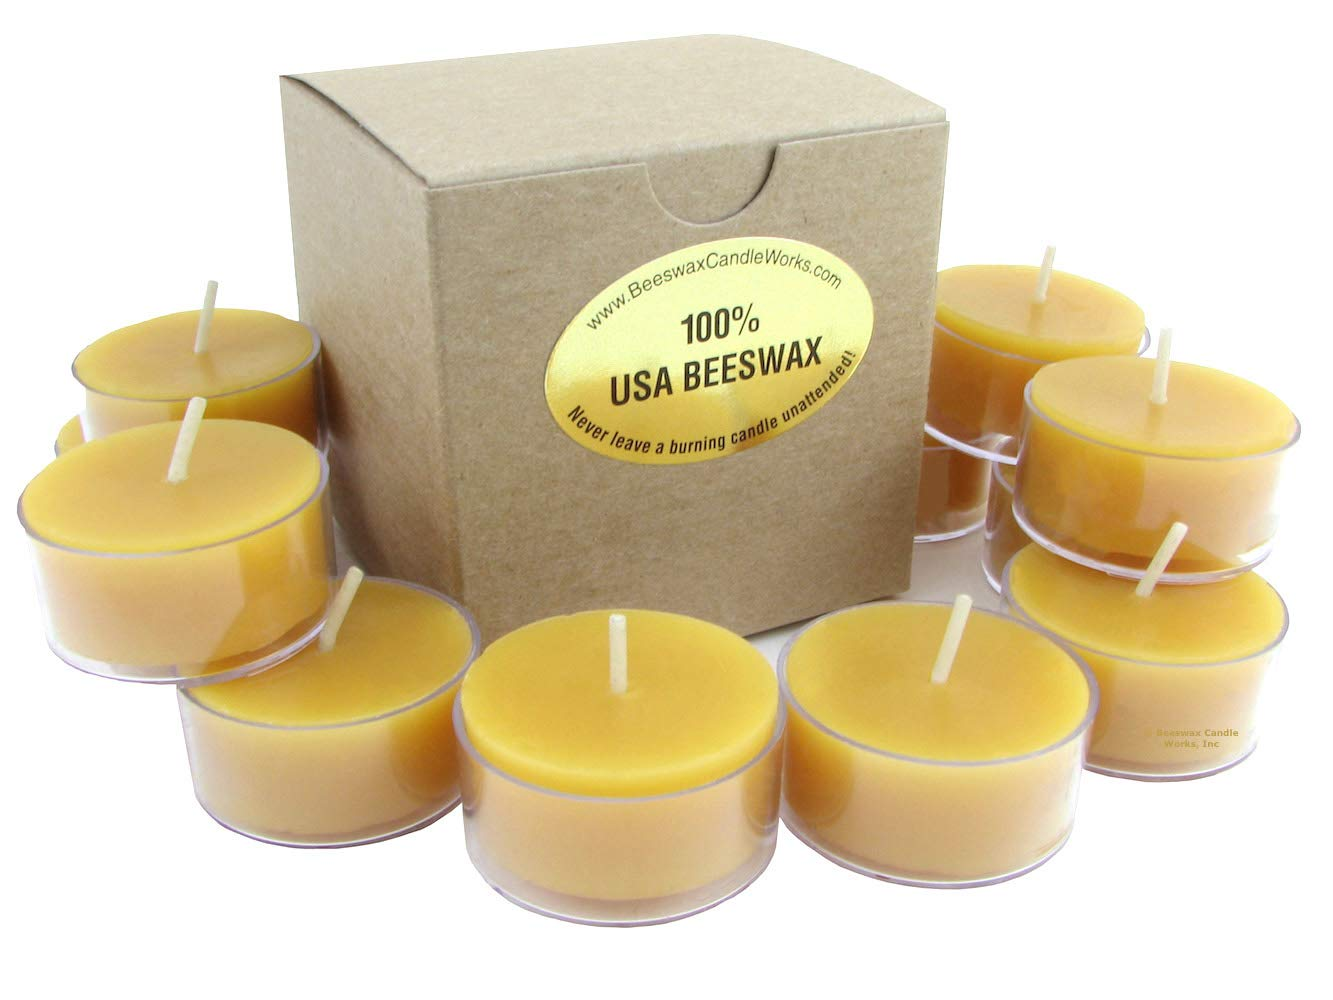 Beeswax Candle Works - 6 Hour Tea Lights 60-Pack - Clear Cups - 100% USA Beeswax by Beeswax Candle Works, Inc